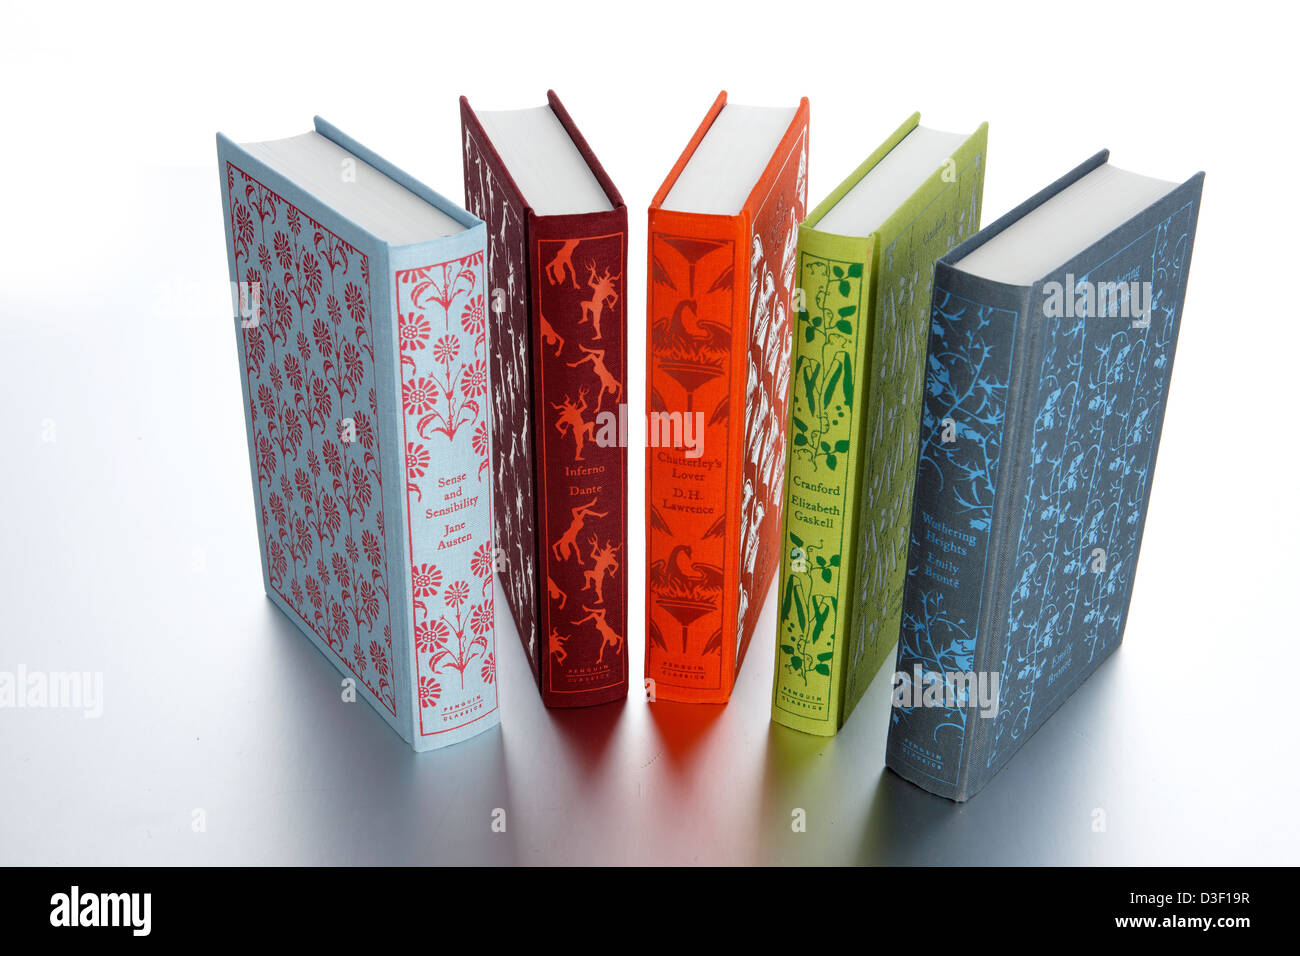 Penguin classic novels fanned spines - Stock Image